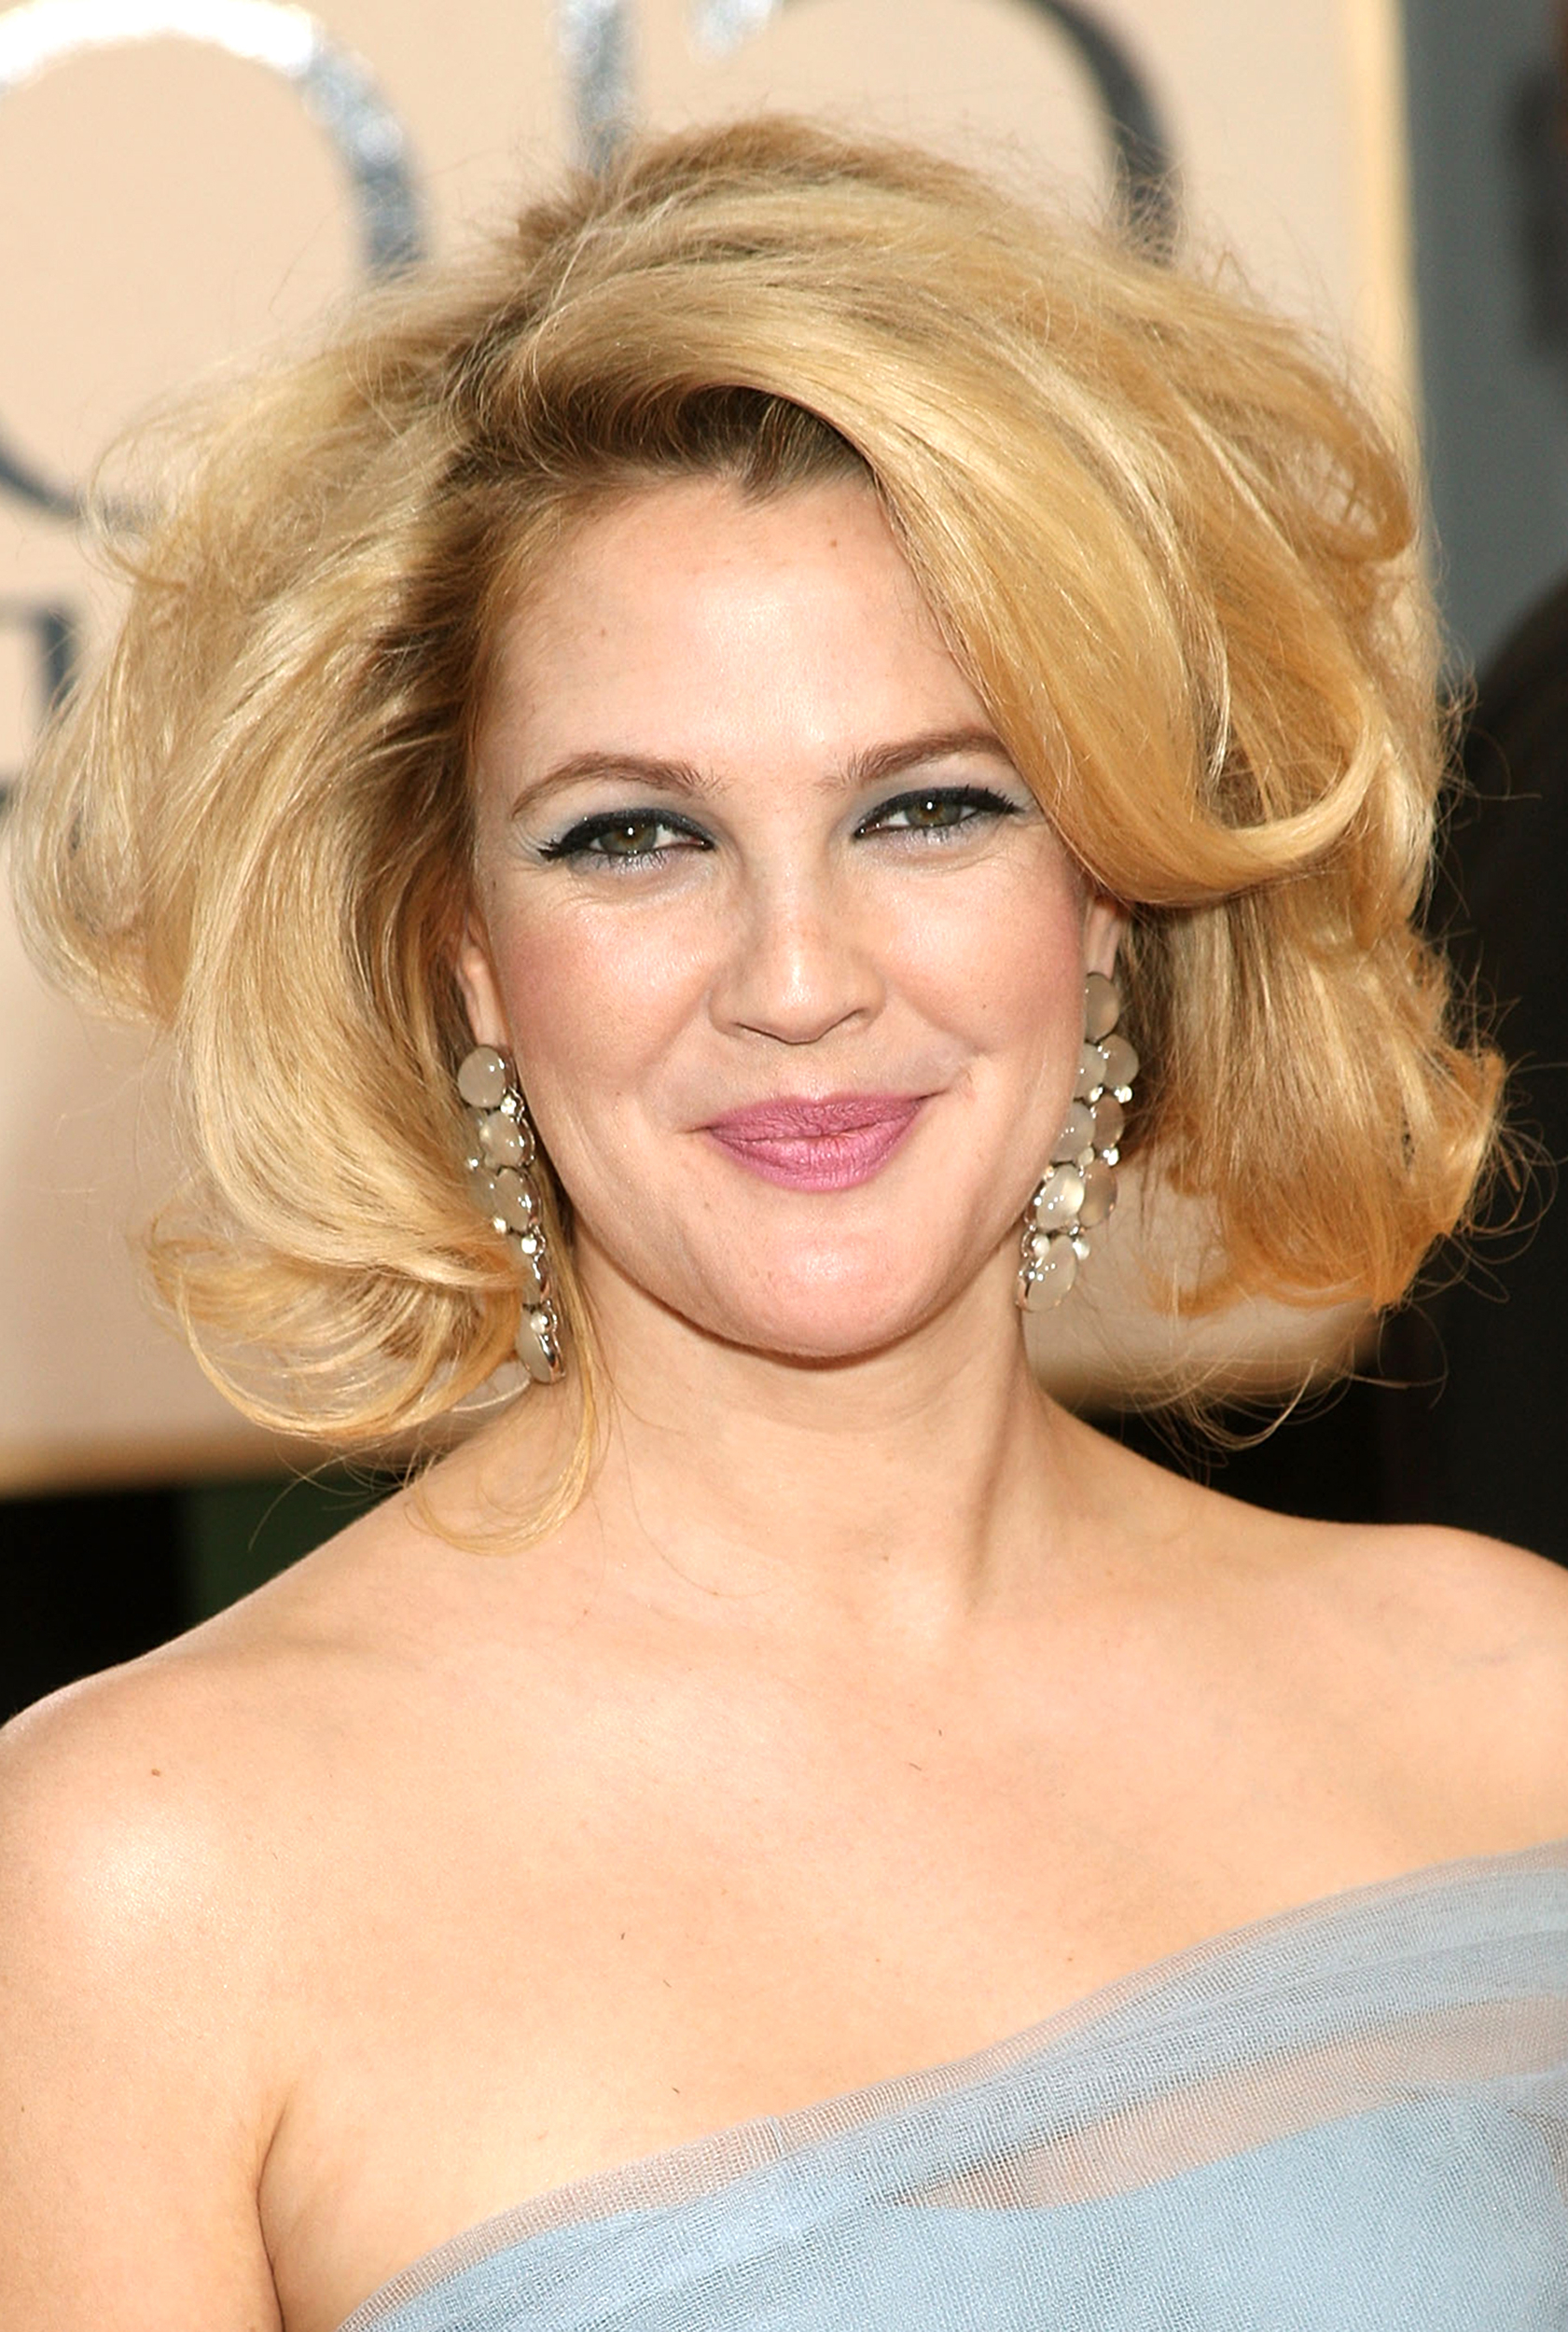 Drew Barrymore's Hair Evolution with regard to Drew Barrymore Short Hairstyles